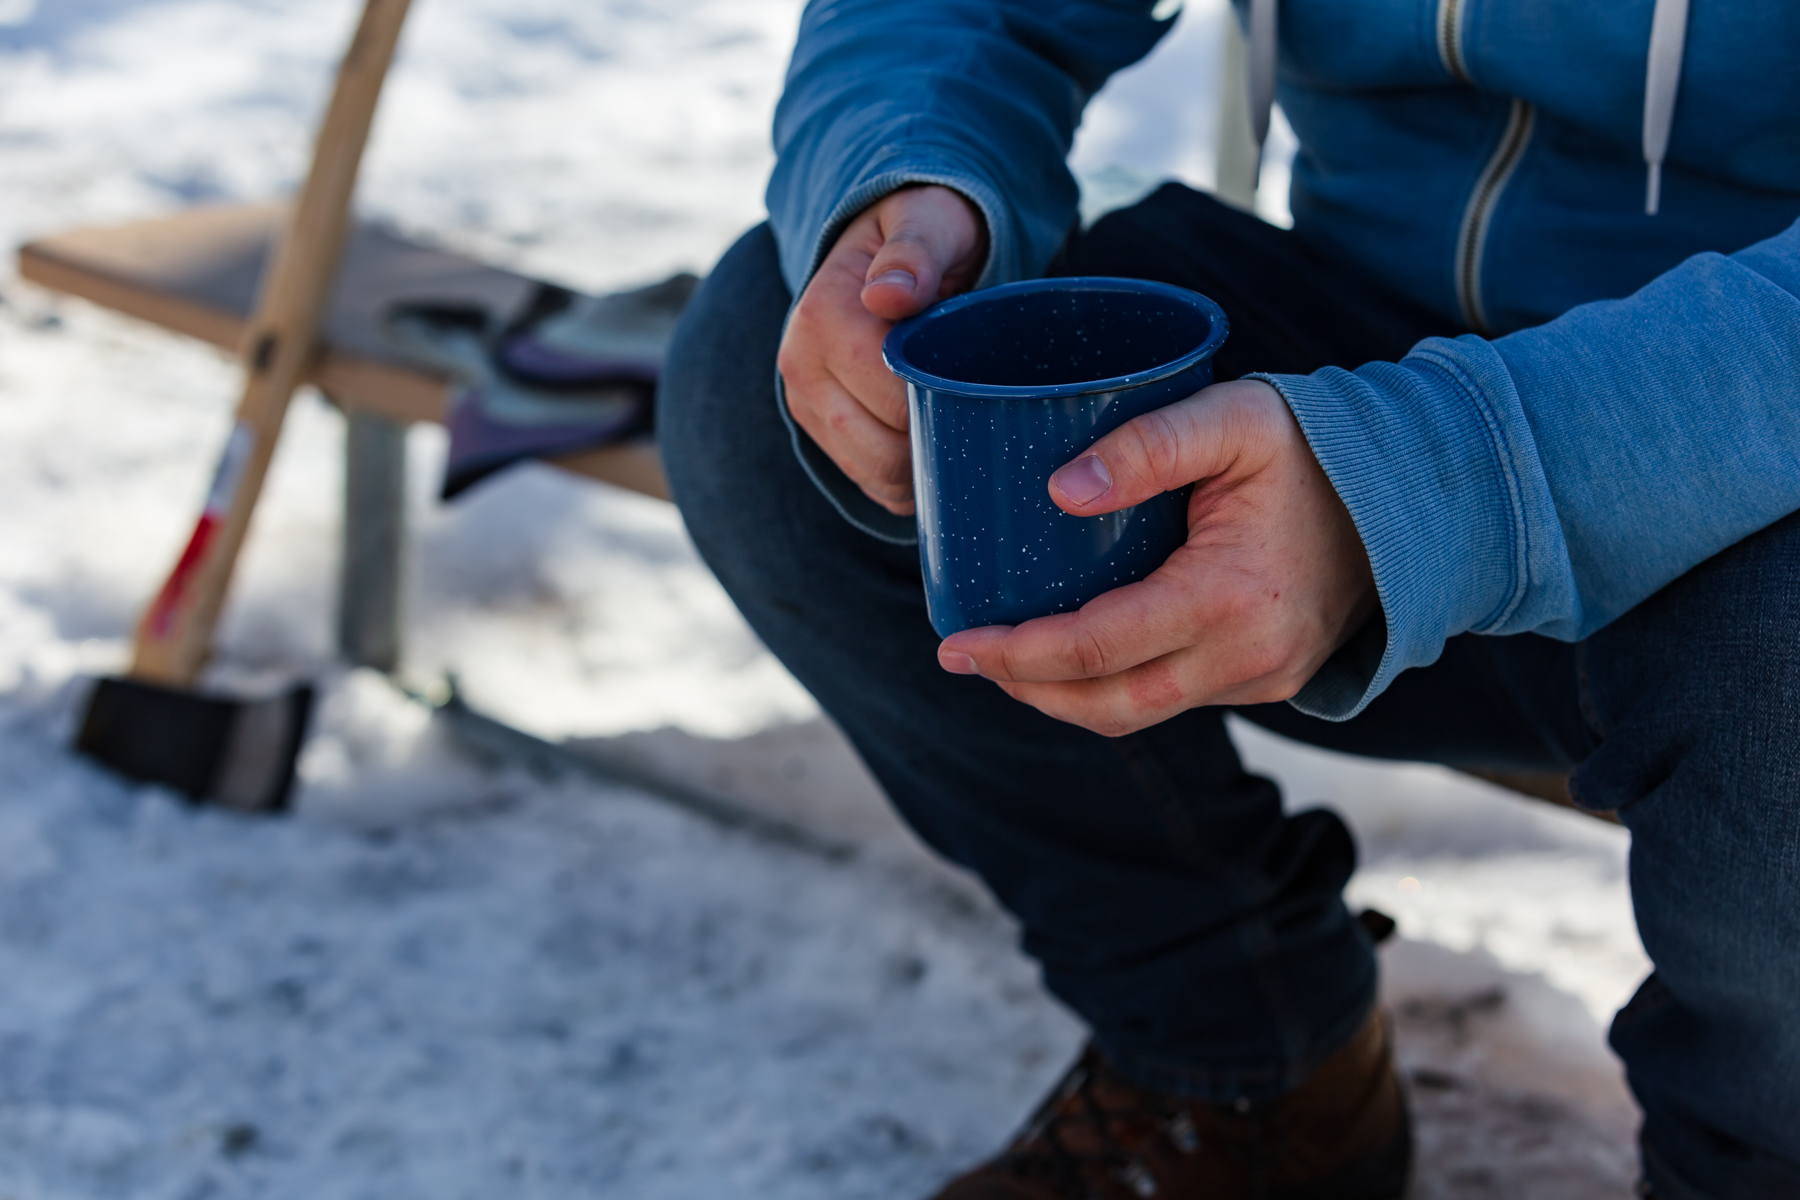 Man sitting on a picnic table drinking coffee from an blue enamel camp mug